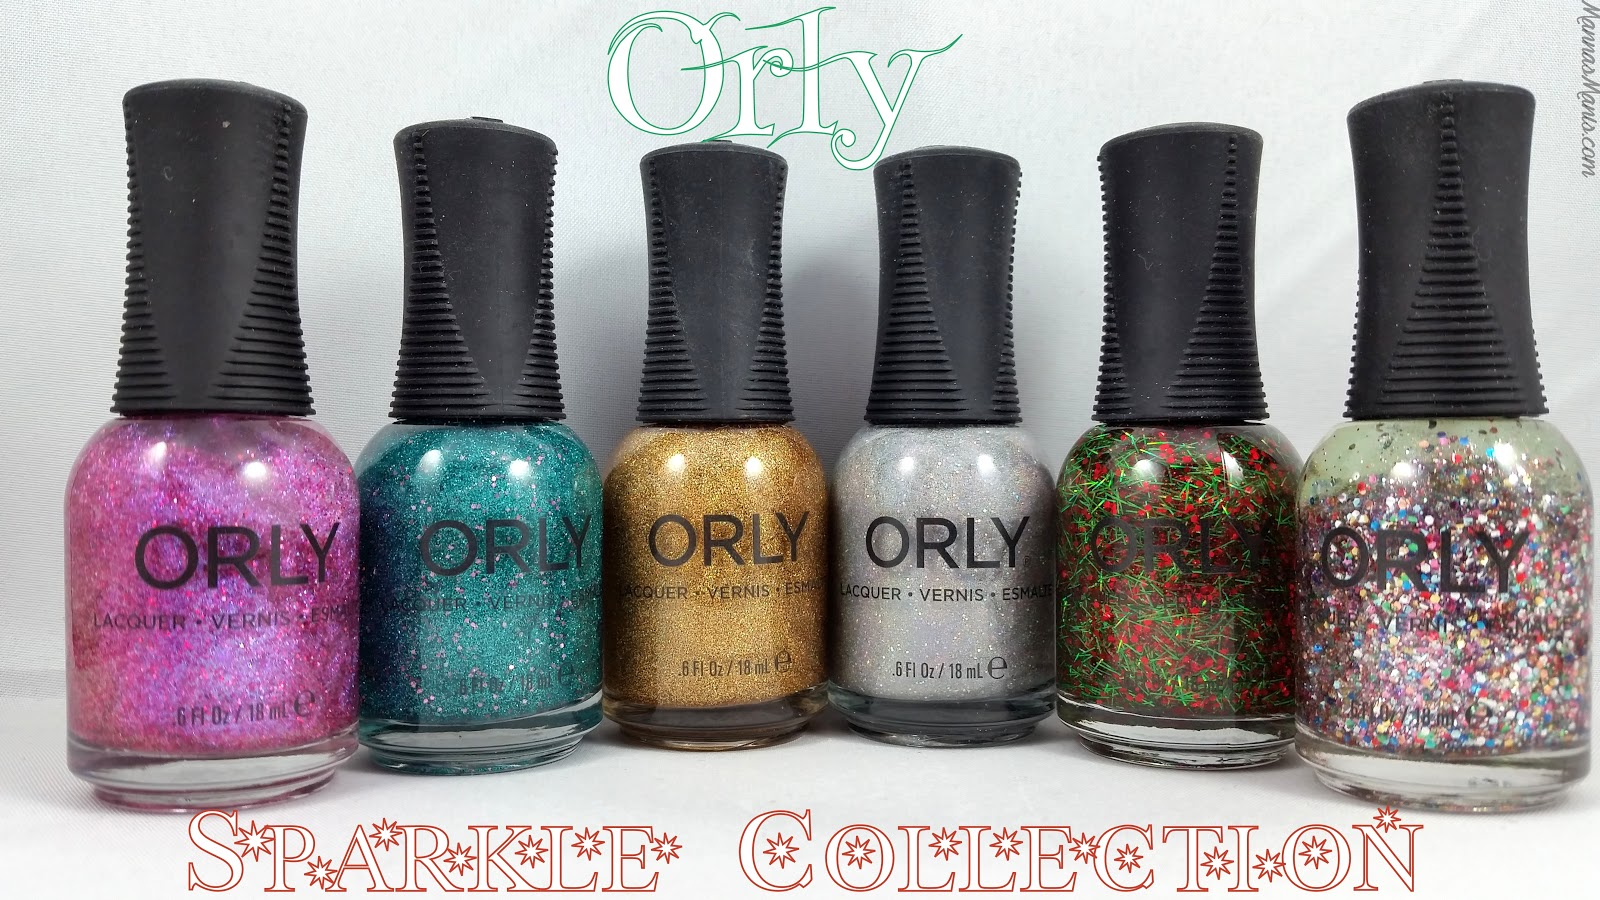 orly sparkle collection